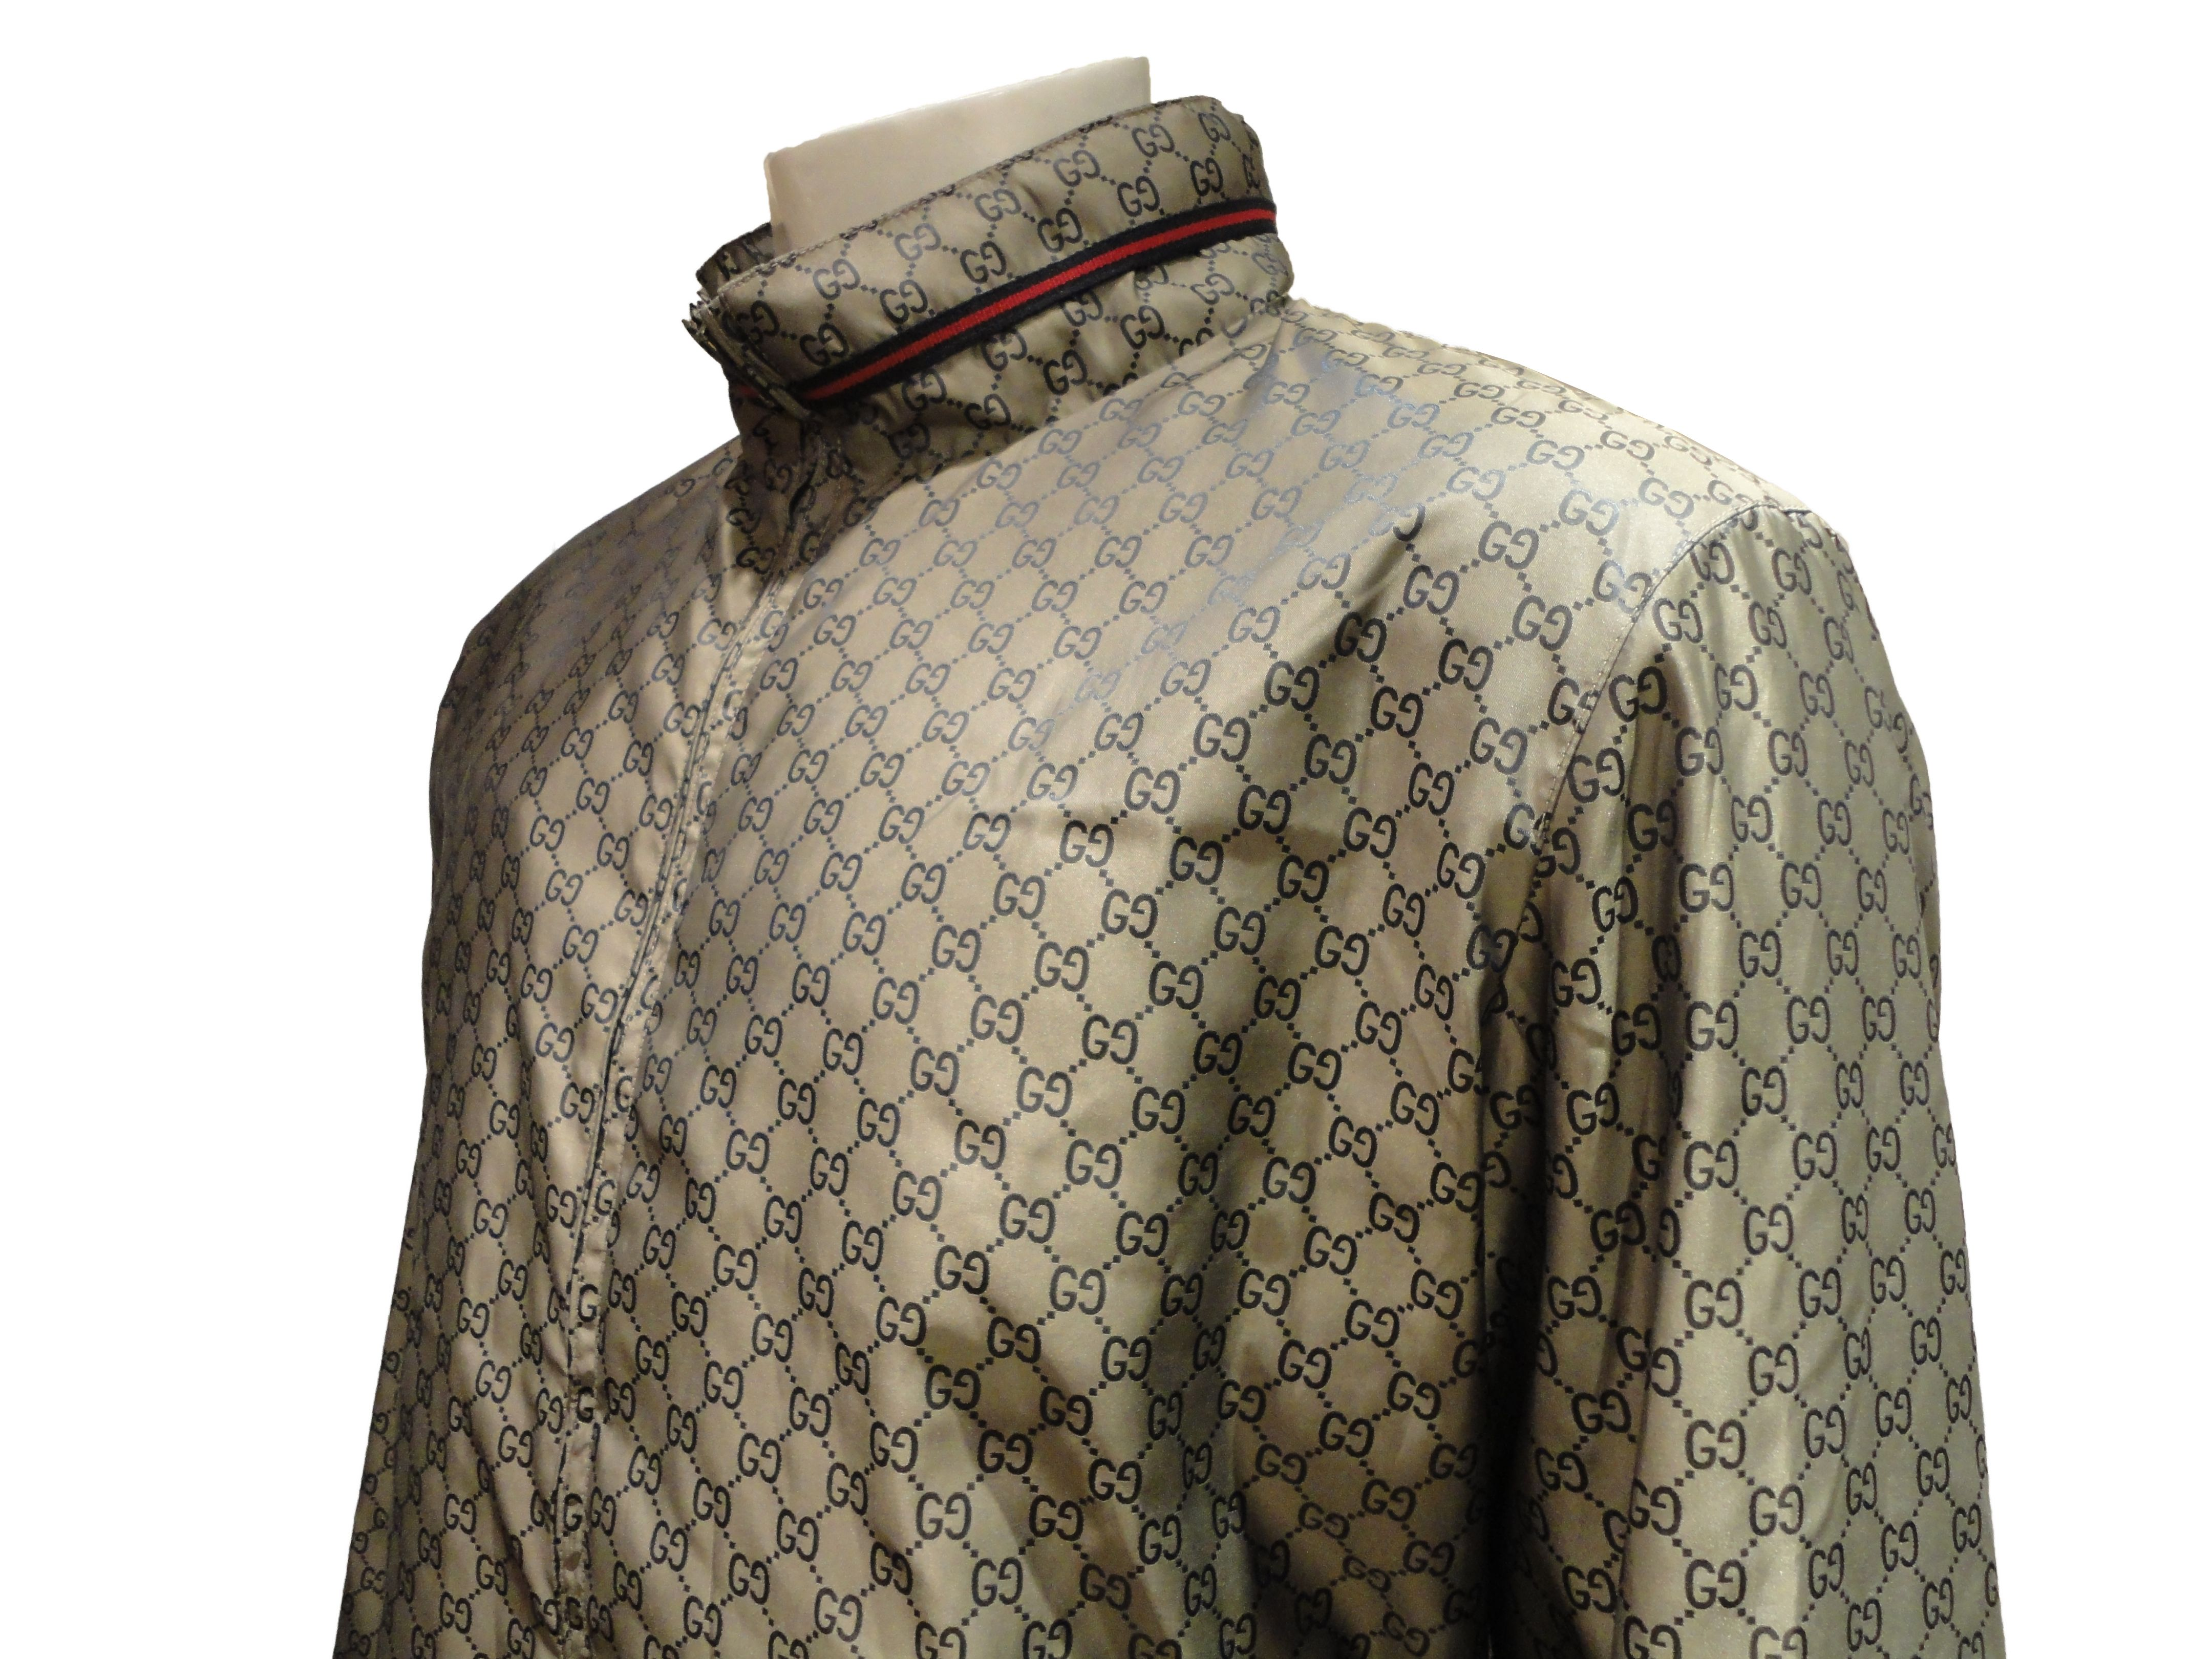 Mens Gucci Jacket Posted By www.houseoflabels.co.uk